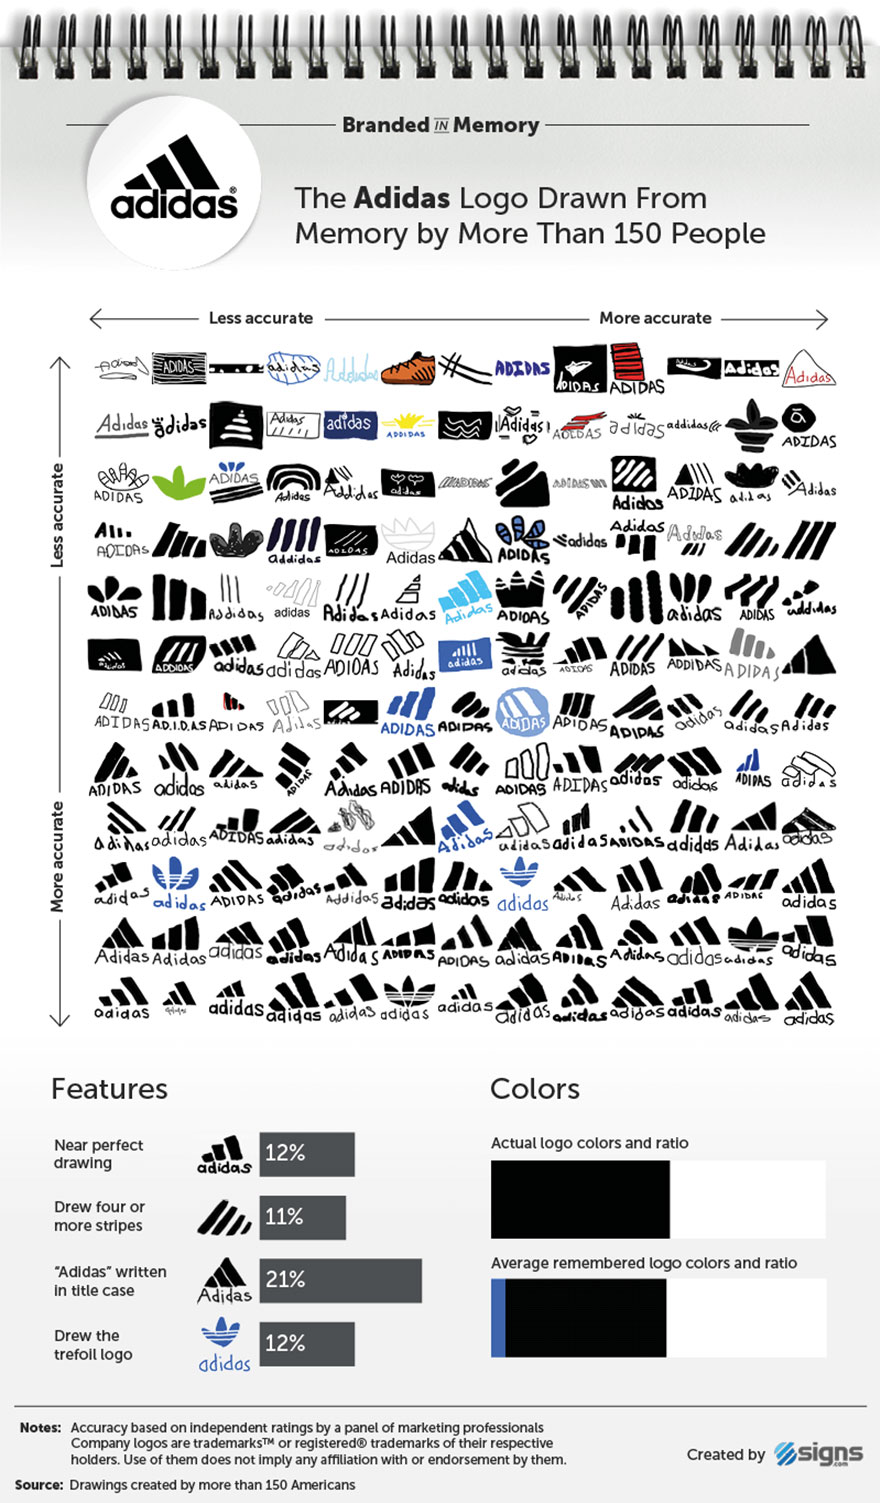 famous brands logos